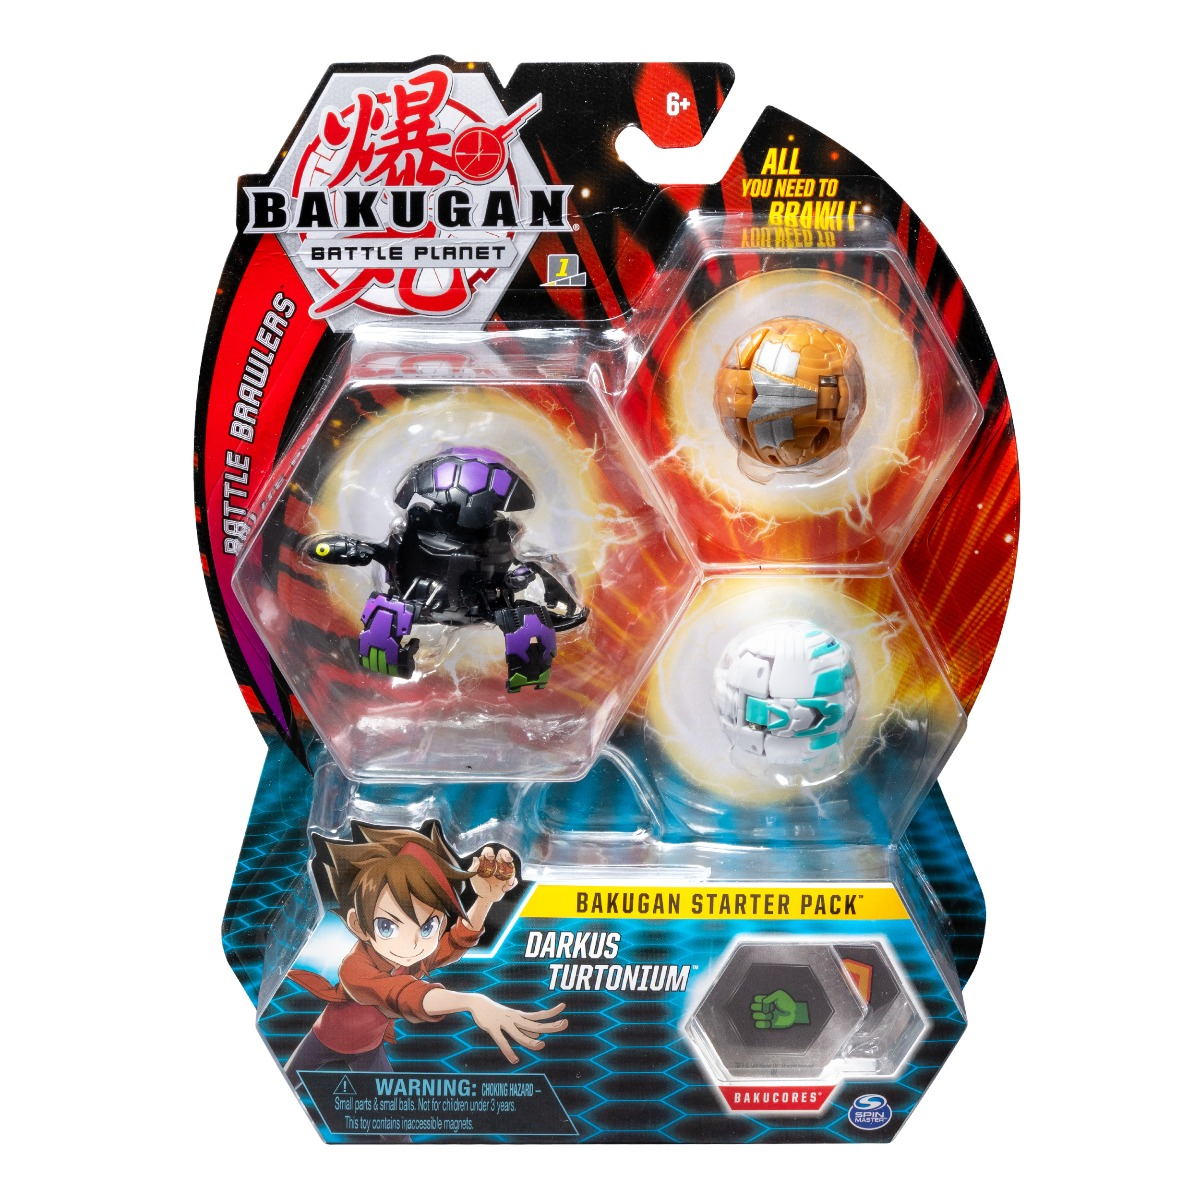 Set Bakugan Battle Planet Starter Darkus Turtonium, 20108790